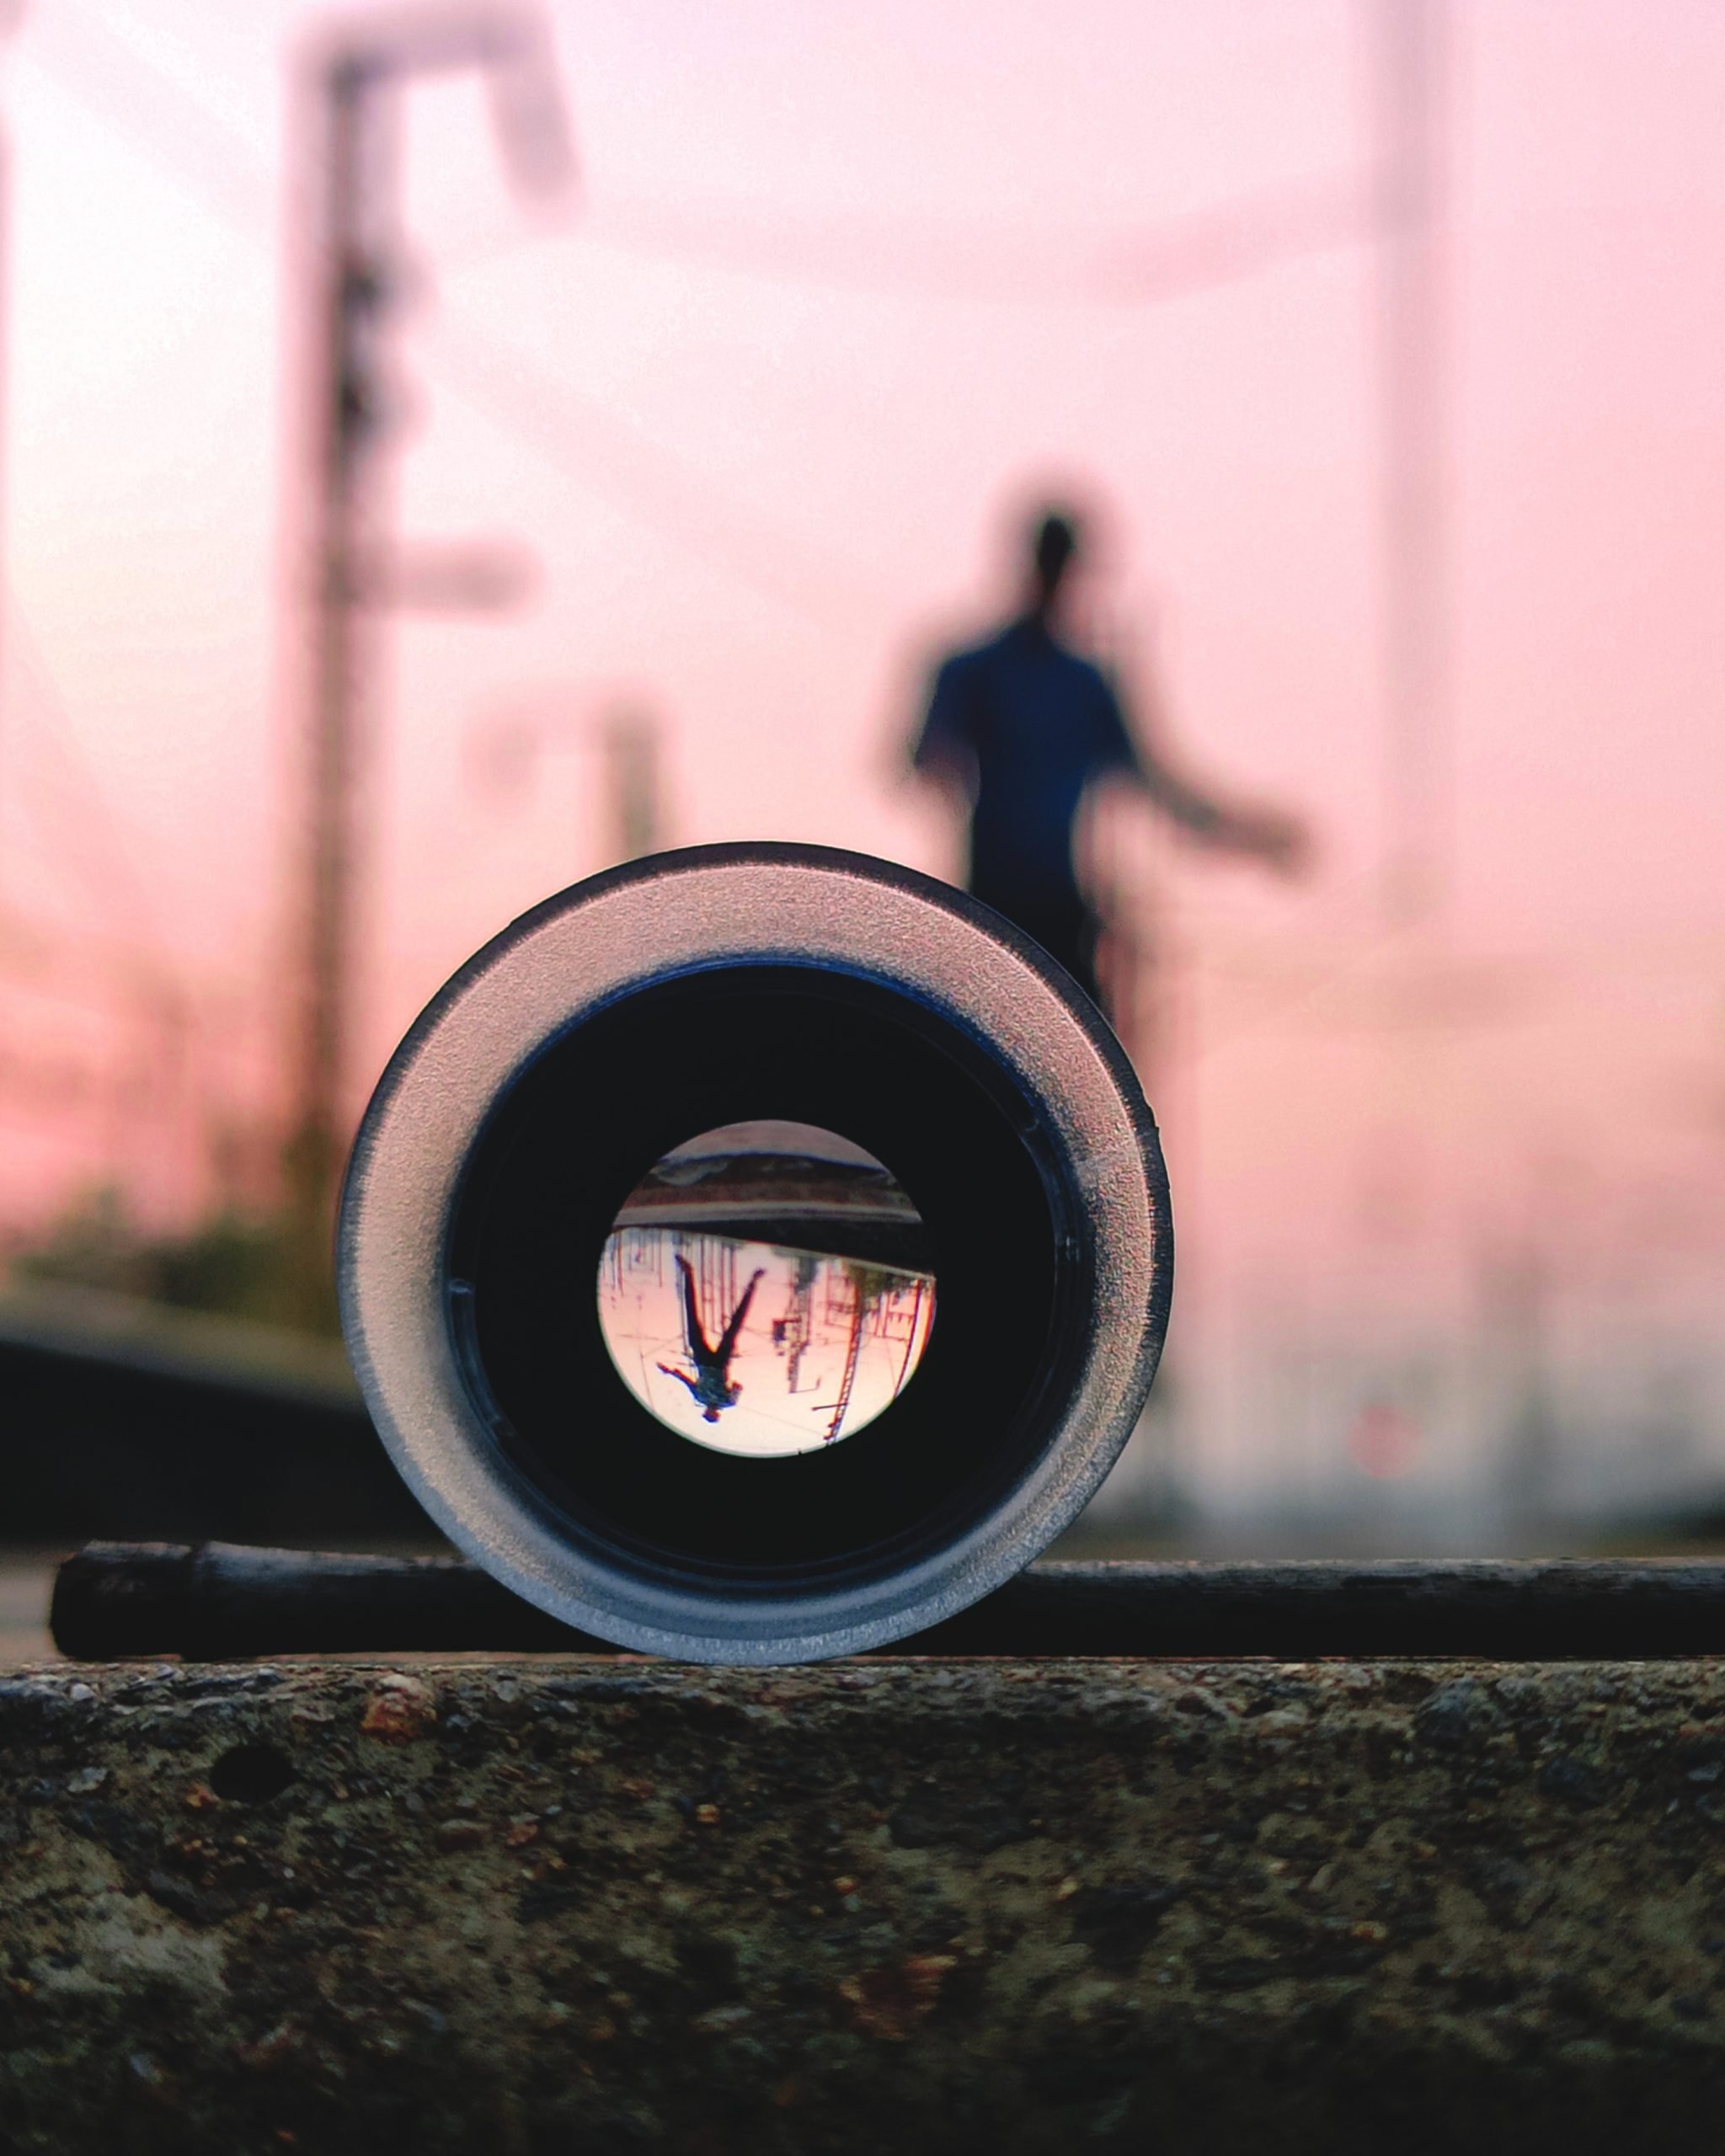 Reflection in a lens